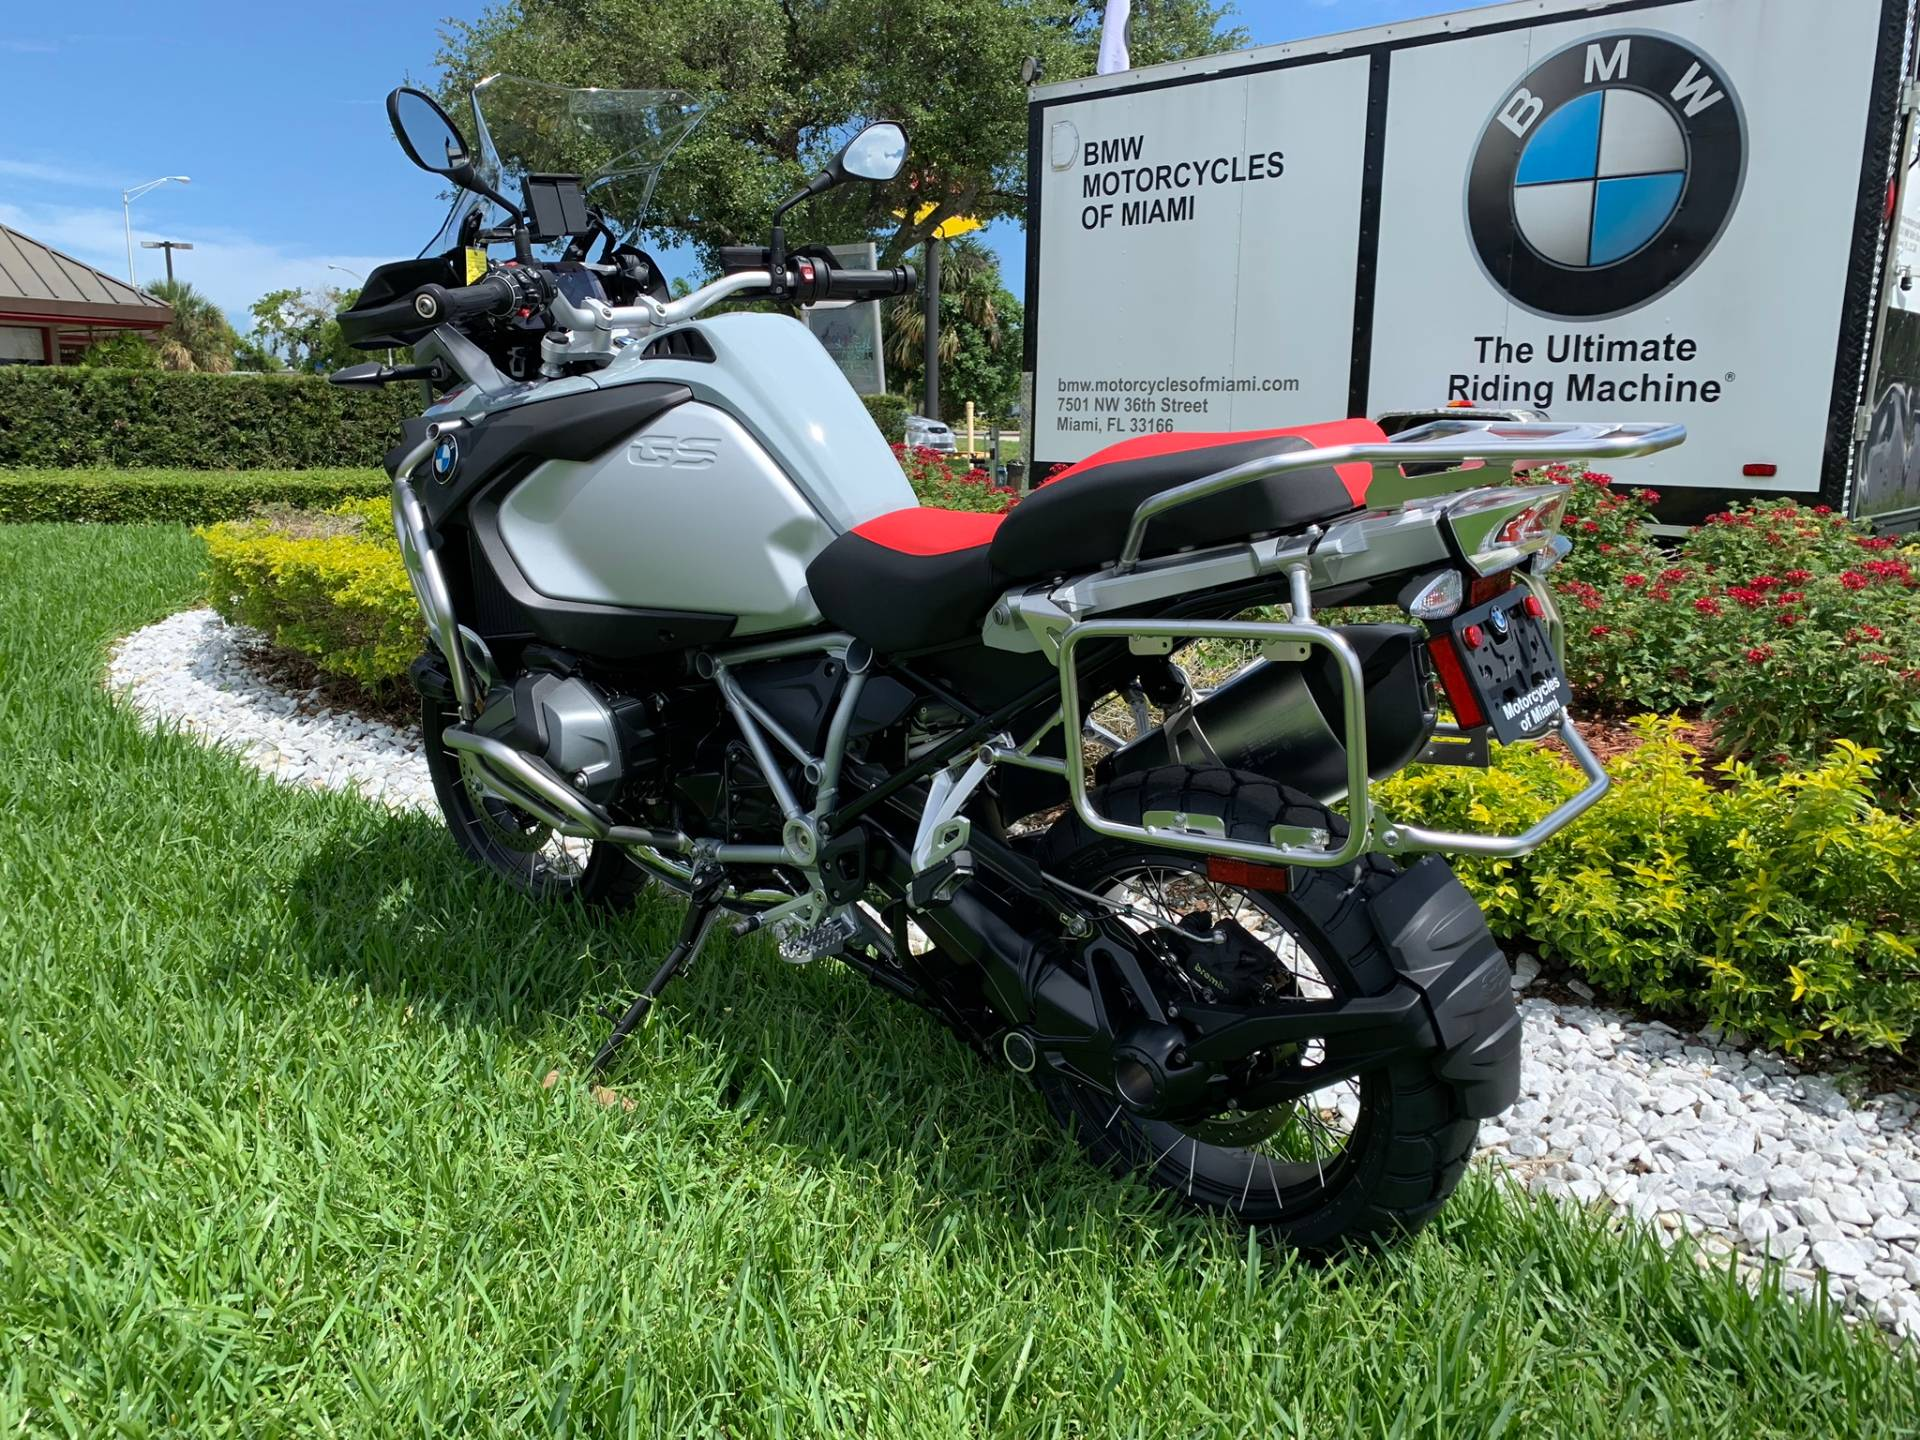 New 2019 BMW R 1250 GSA for sale, New BMW for sale R 1250GSA, New BMW Motorcycle R1250GSA for sale, new BMW 1250GS Adventure, R1250GS Adventure, Adventure. BMW Motorcycles of Miami, Motorcycles of Miami, Motorcycles Miami, New Motorcycles, Used Motorcycles, pre-owned. #BMWMotorcyclesOfMiami #Motorcy - Photo 11